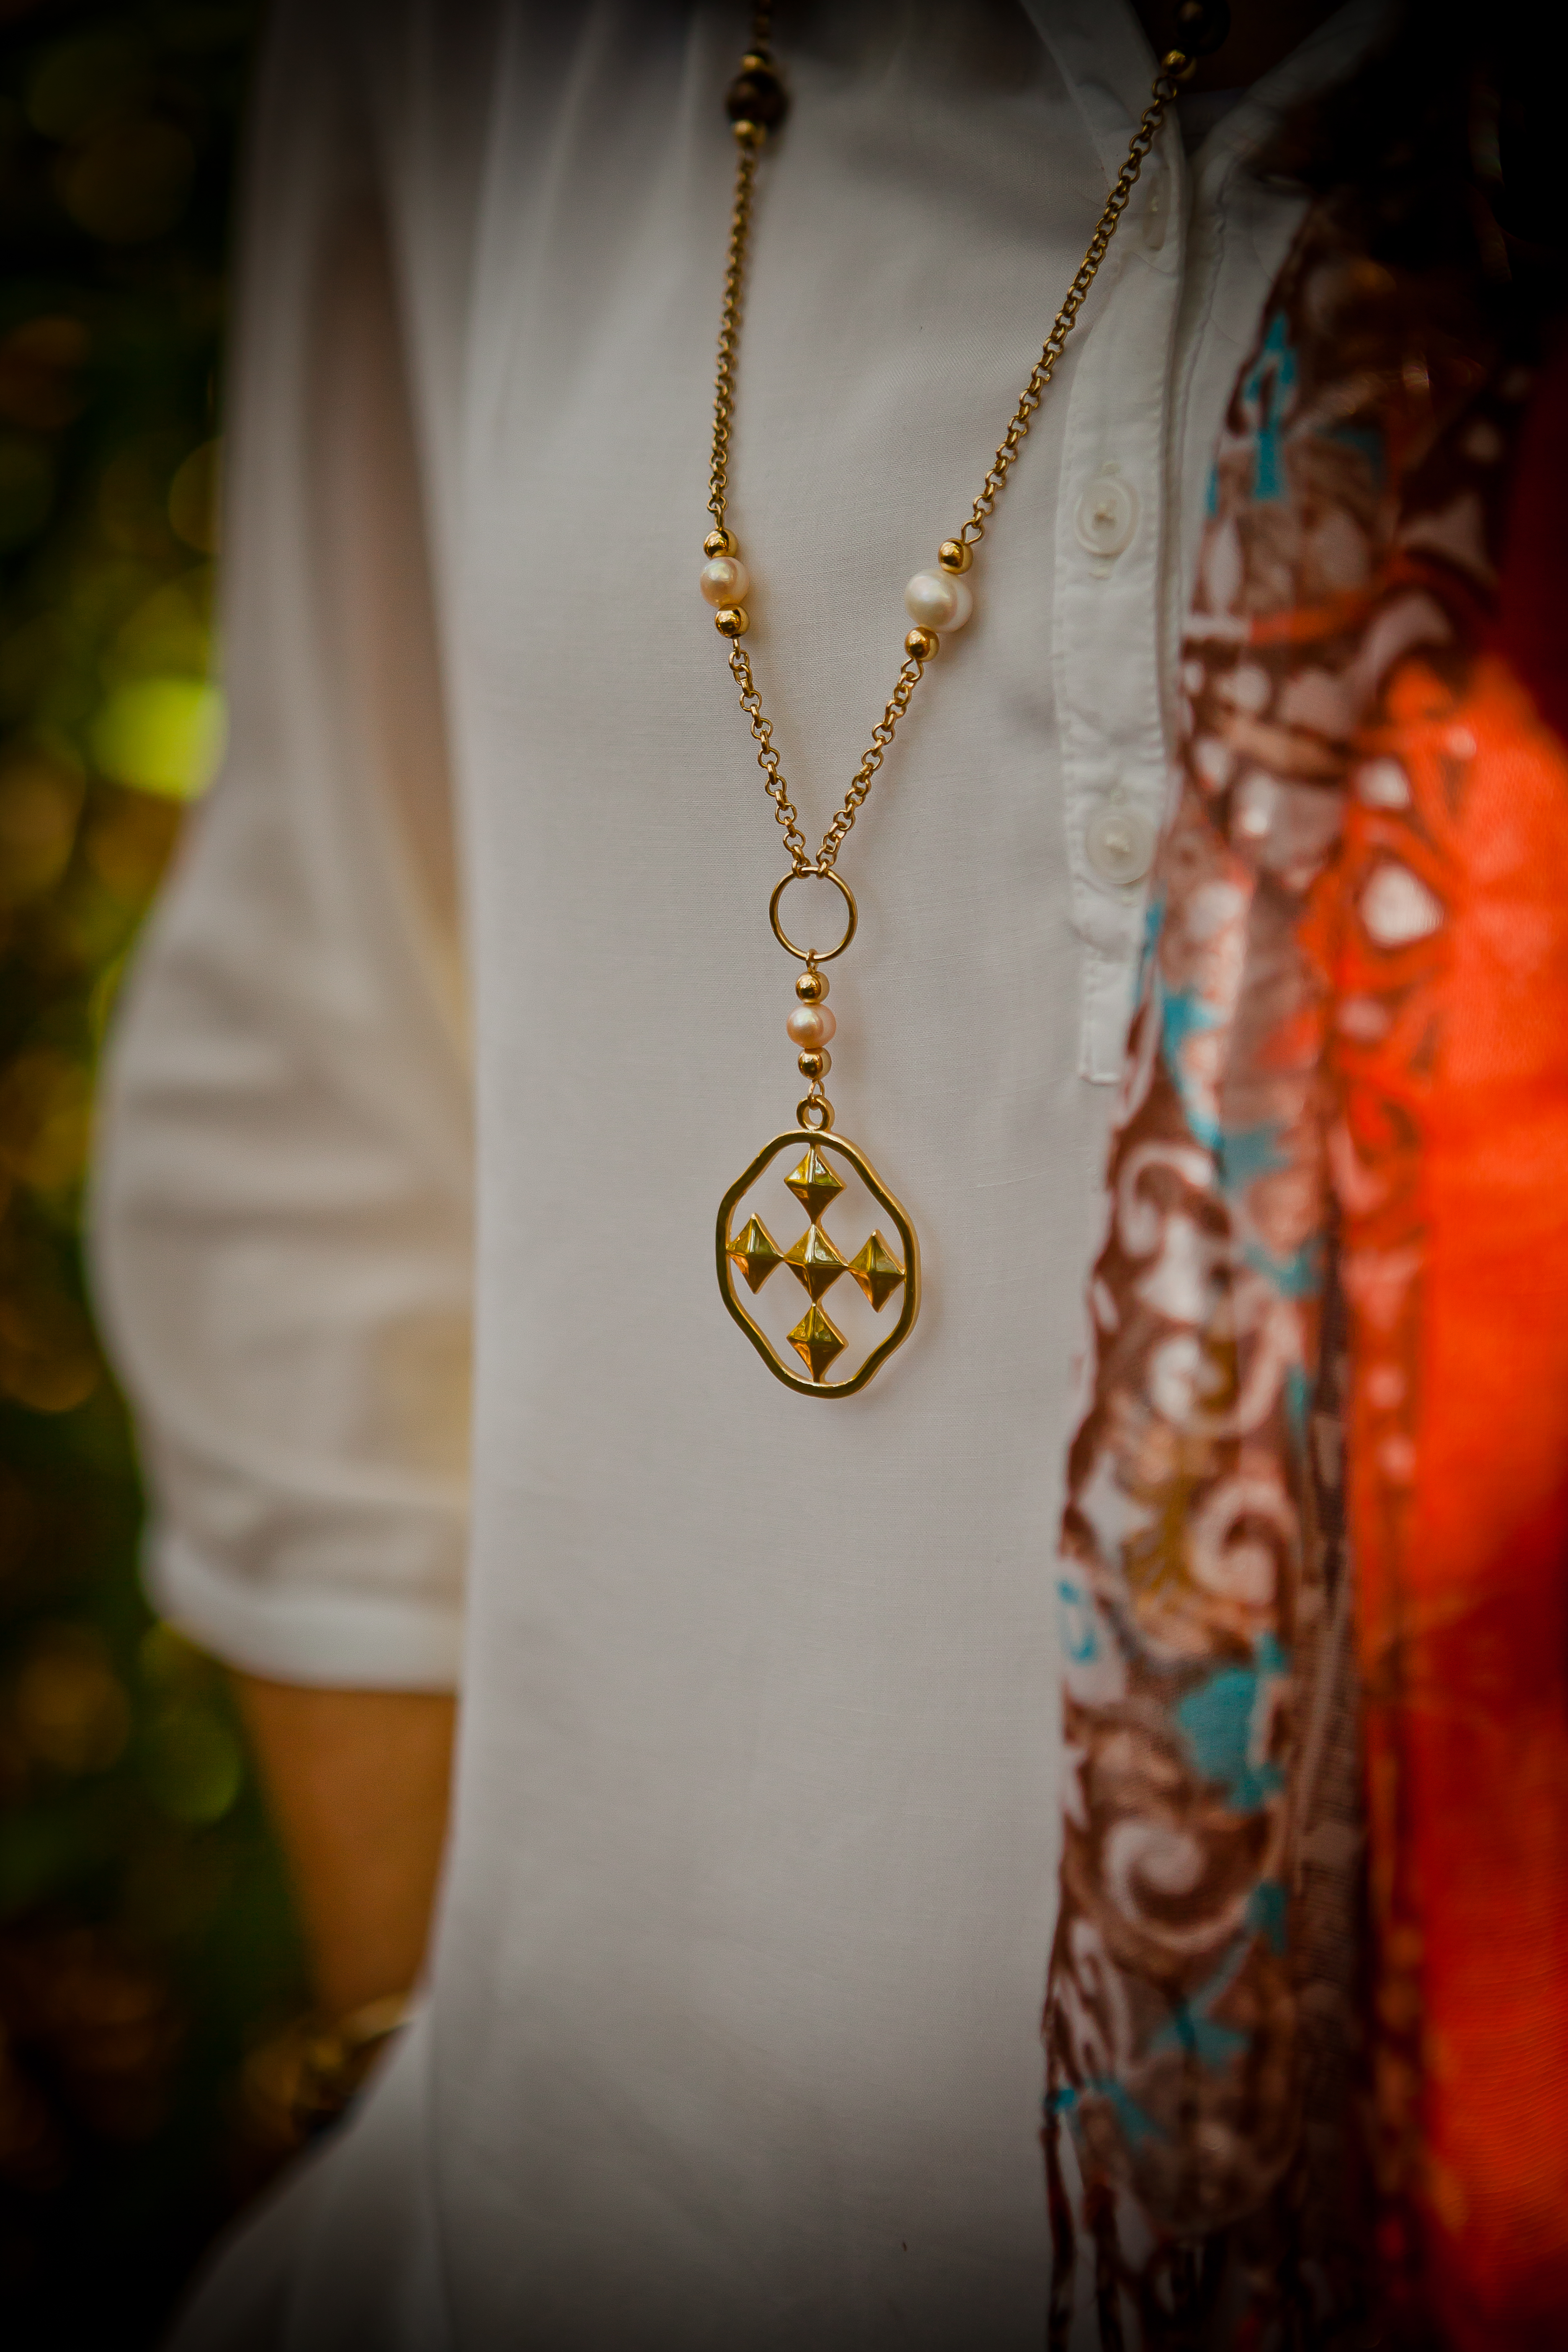 necklace-on-blouse.jpg